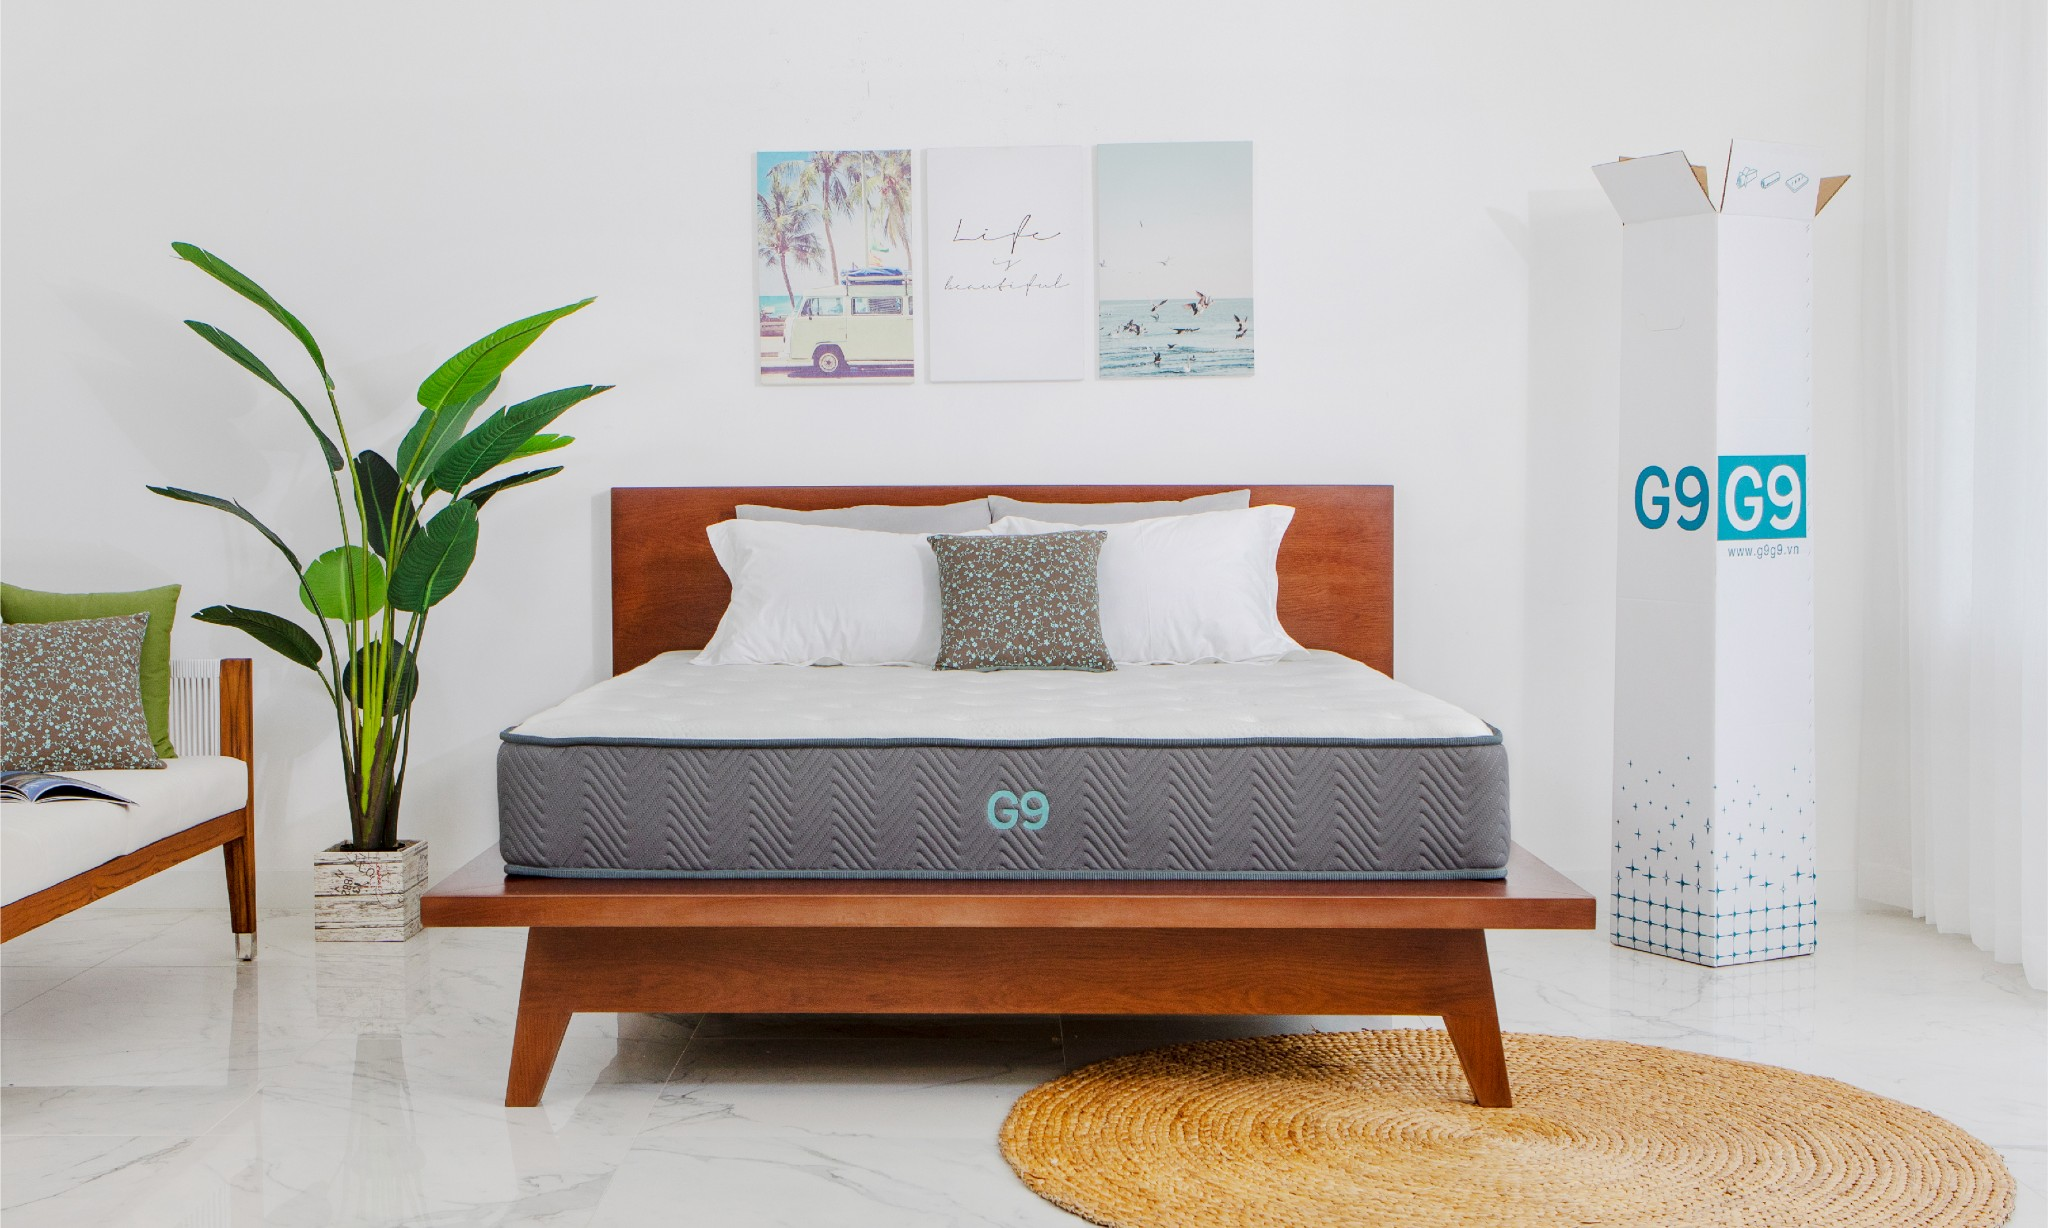 The Noa Sunset bed